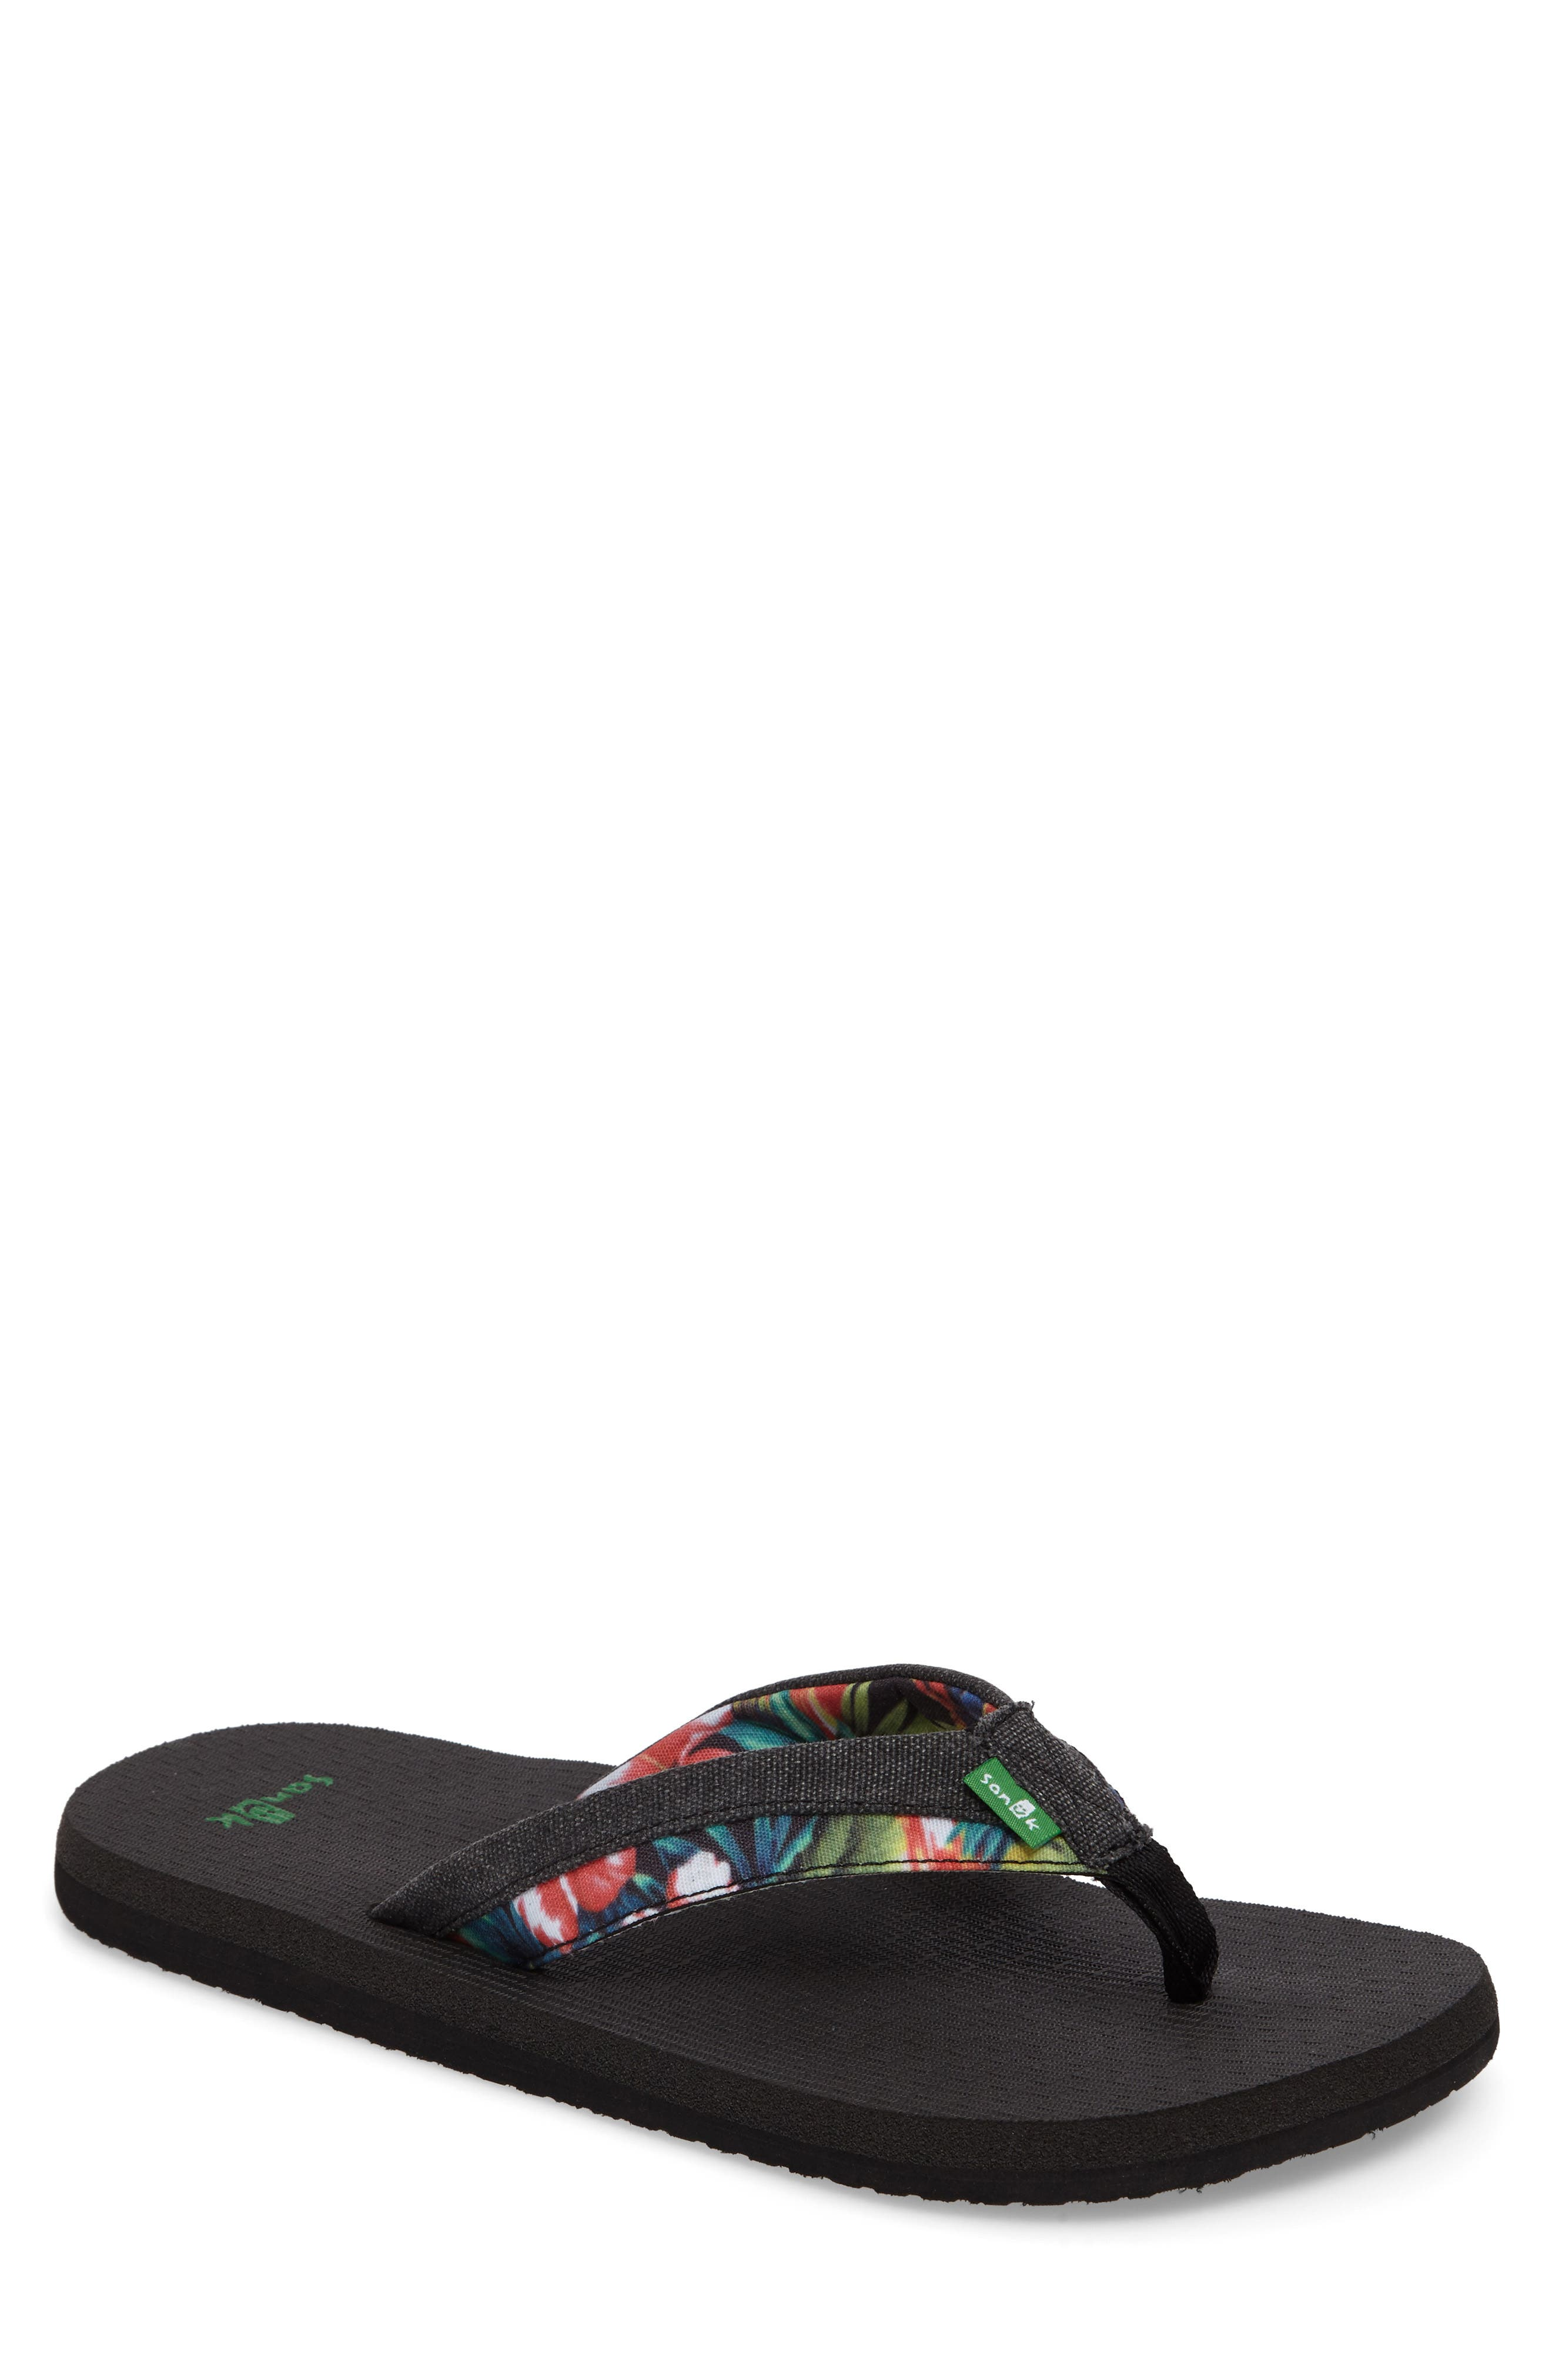 Main Image - Sanuk Beer Cozy Light Funk Flip Flop (Men)